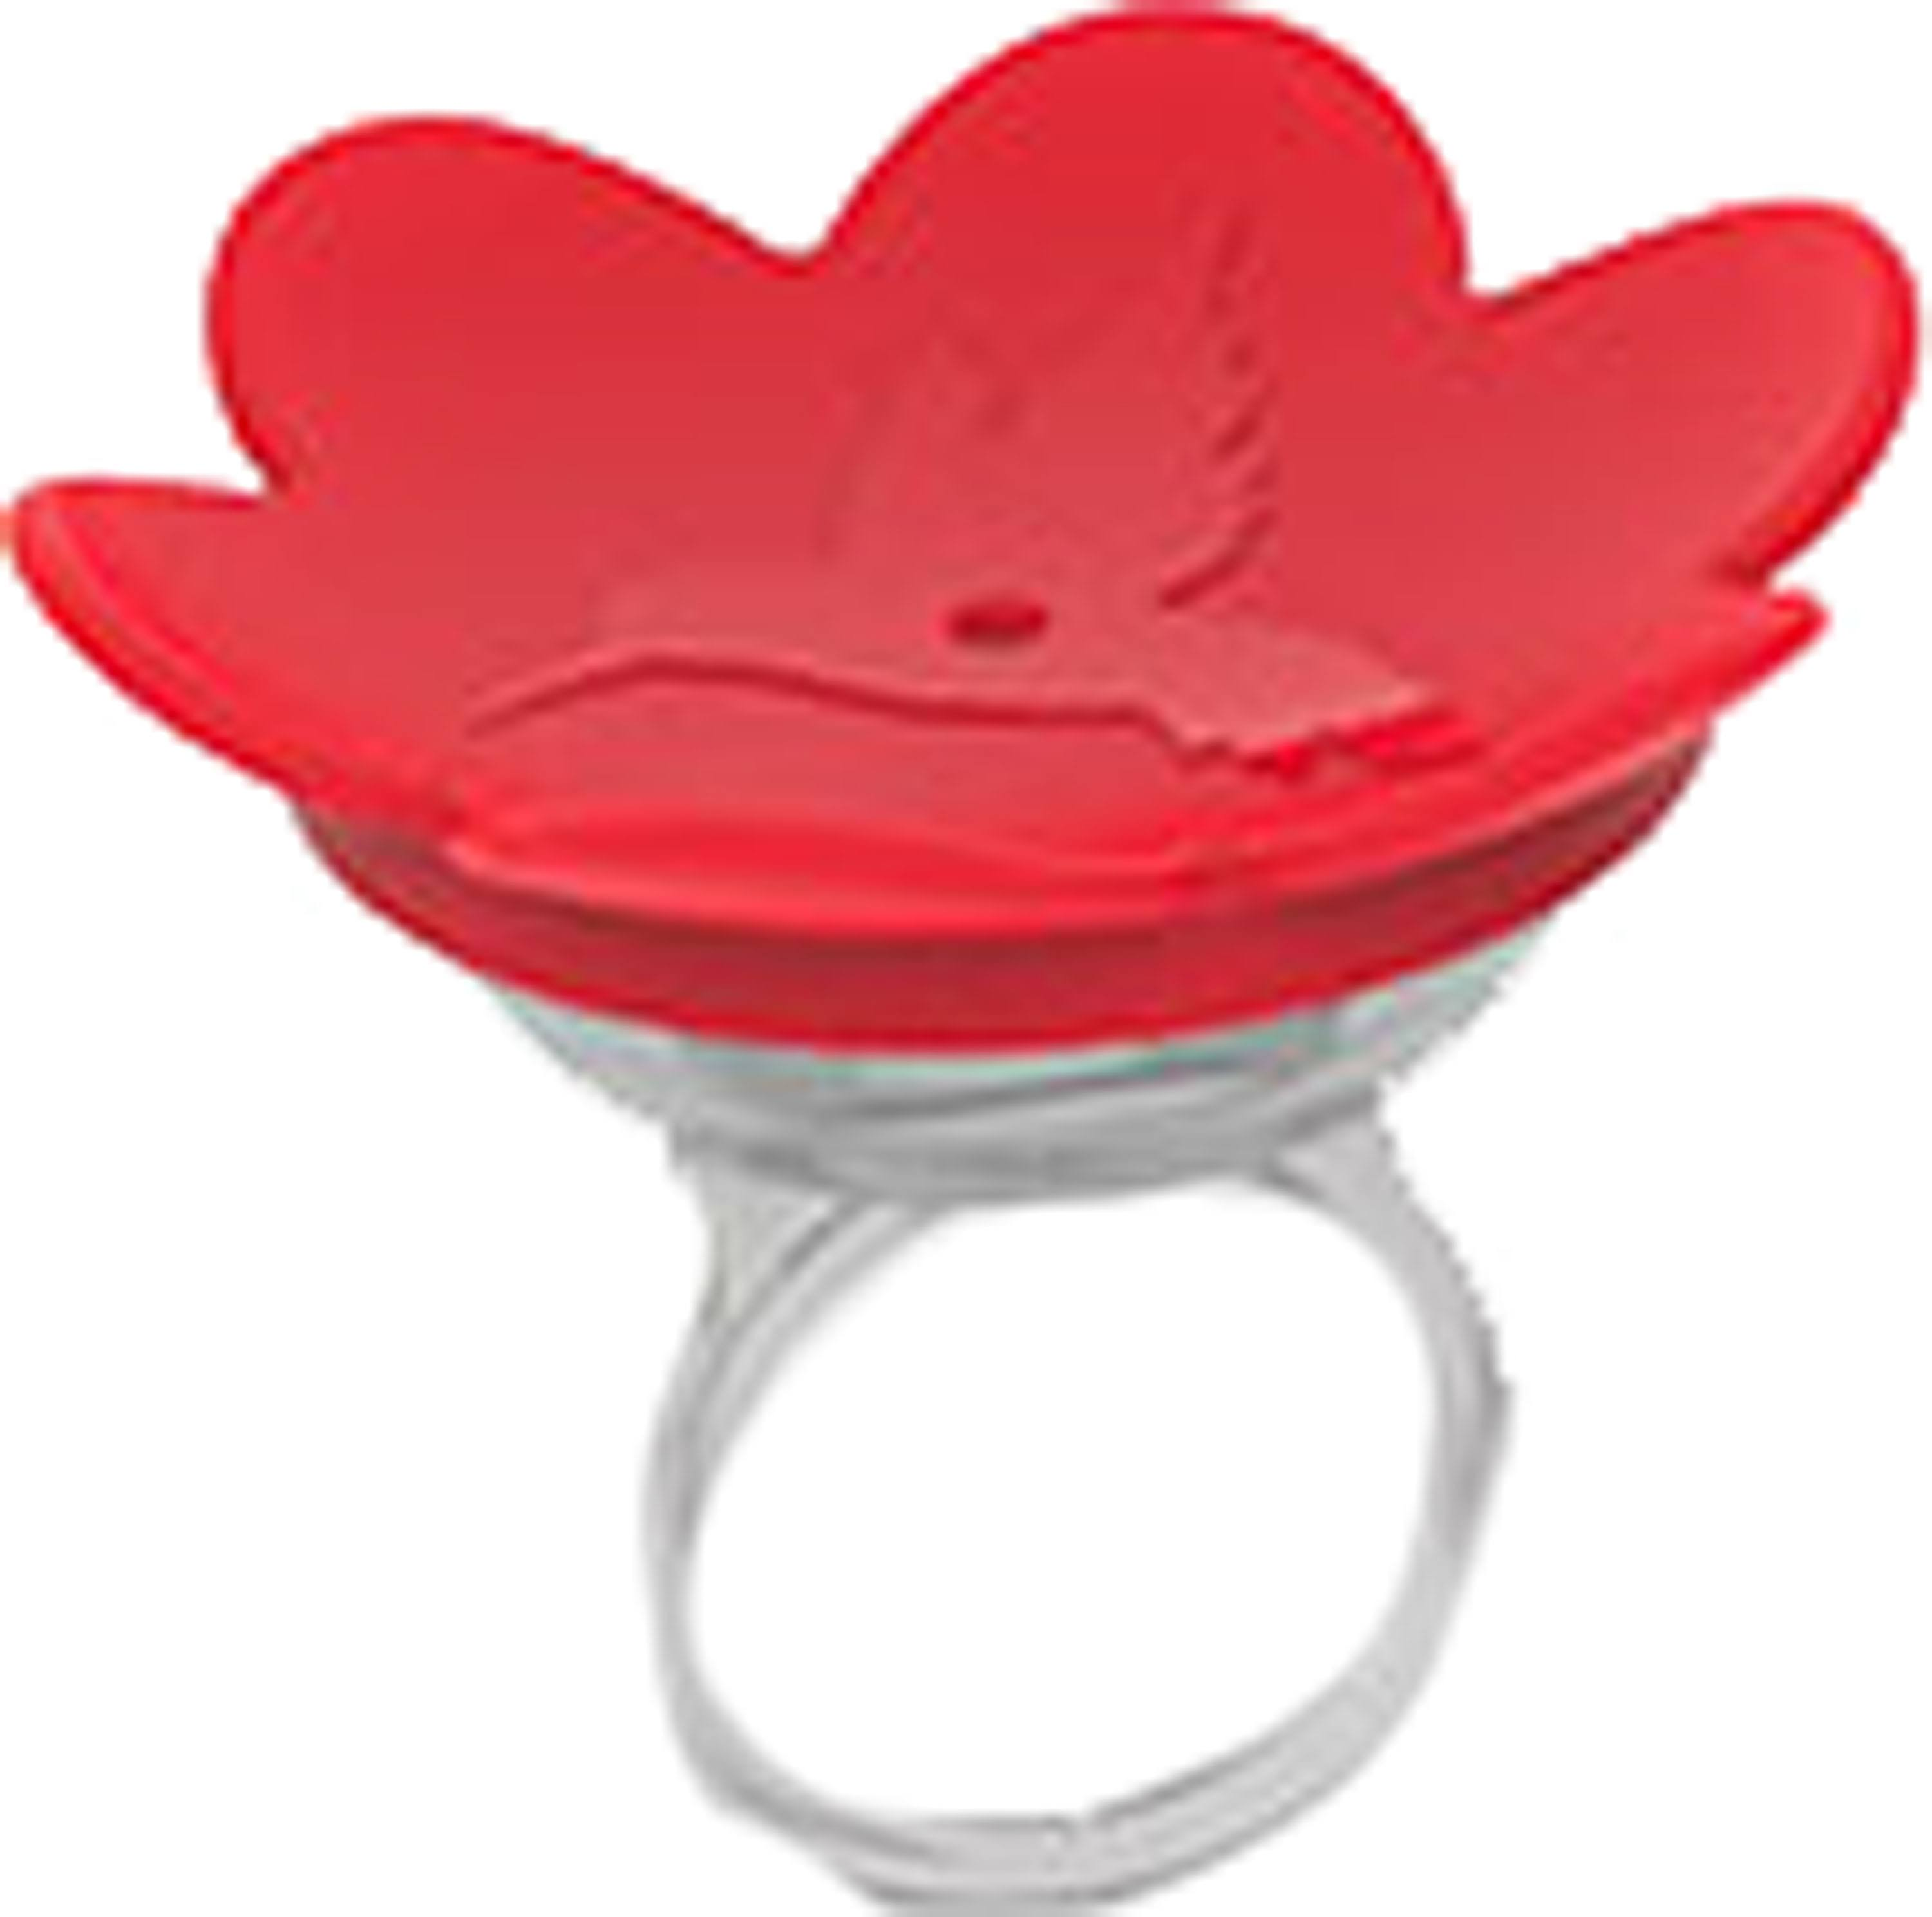 Backyard Essentials Hummer Ring, Red